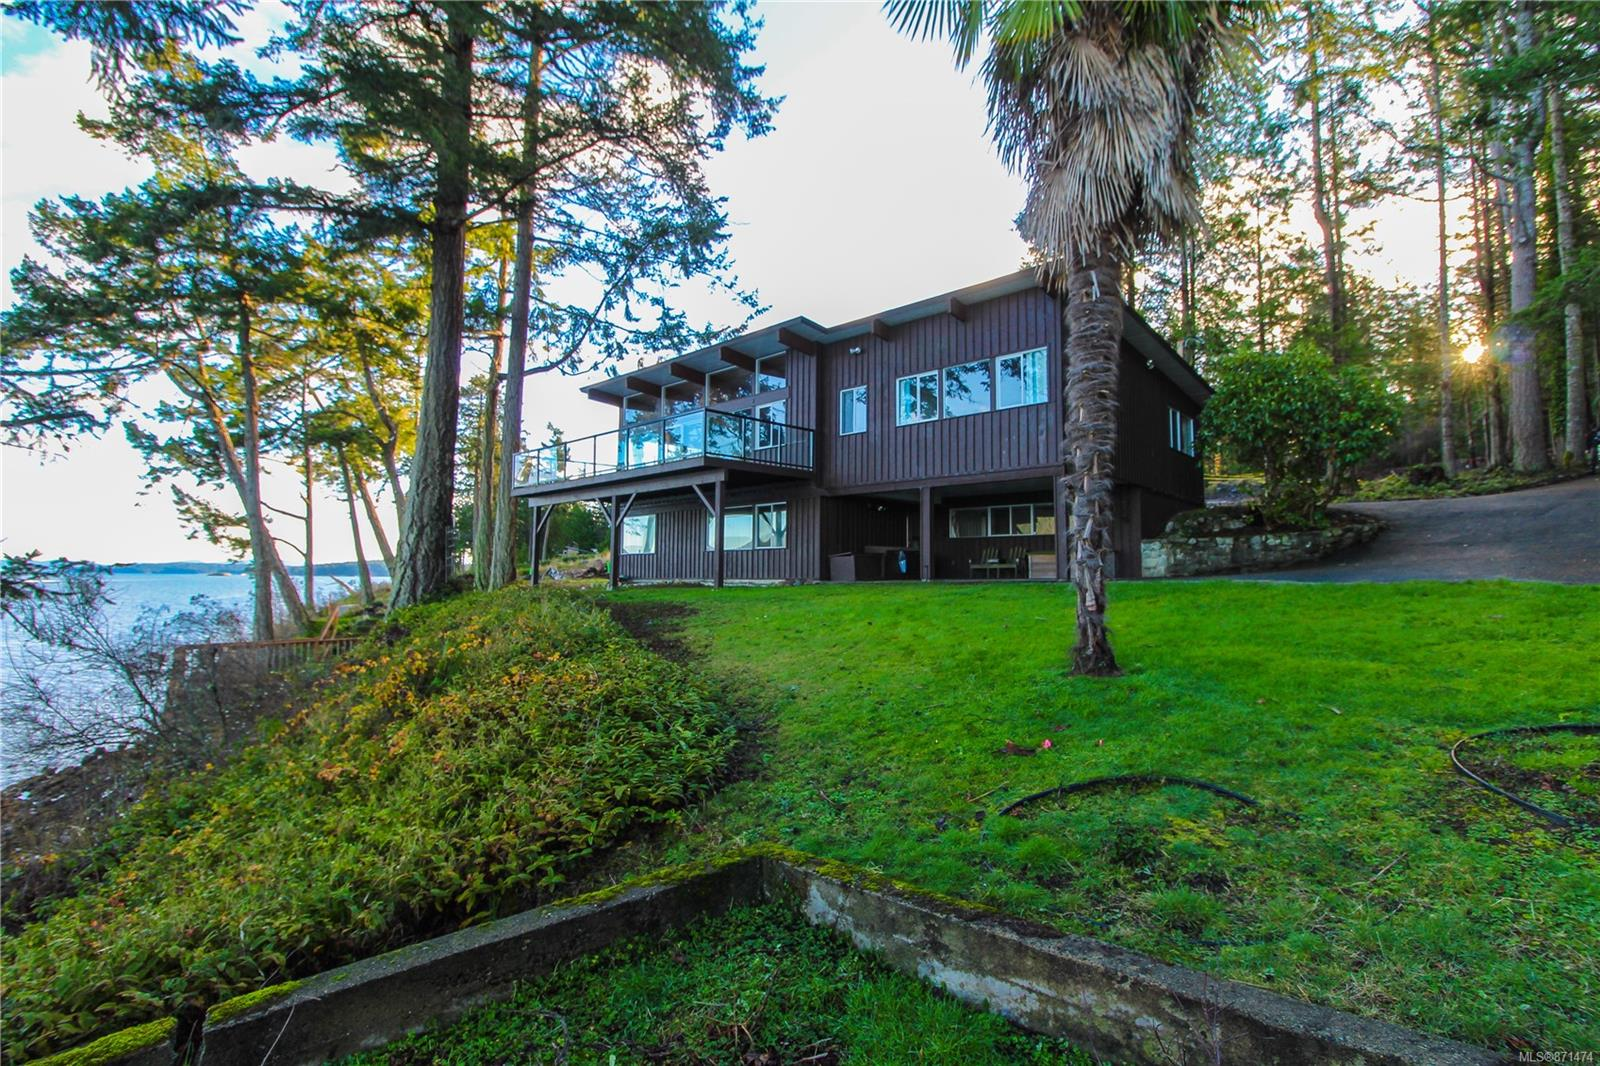 Wake up to a beautiful Ocean view over Satellite Channel with over 114 ft of waterfront. Looking right across to Mount Tuam on Salt Spring Island this North Saanich location has steps down to the beach, a boathouse renovated in 2017, and its own mooring buoy! With 2/3 of an acre, a large deck and close-up view of the Ocean this house offers a great opportunity to get on the beach in the best place in Canada . Open concept with vaulted ceilings, there are Ocean views from the majority of the interior of the home. Primary bedroom with ensuite is on the main floor, with an additional bedroom and den on the lower floor, both have a beautiful ocean view. Perfect spot to raise a family, tons of space and endless fun to be had on the beach. With Victoria's competitive market, this is a rare opportunity to buy your dream home, don't hesitate!